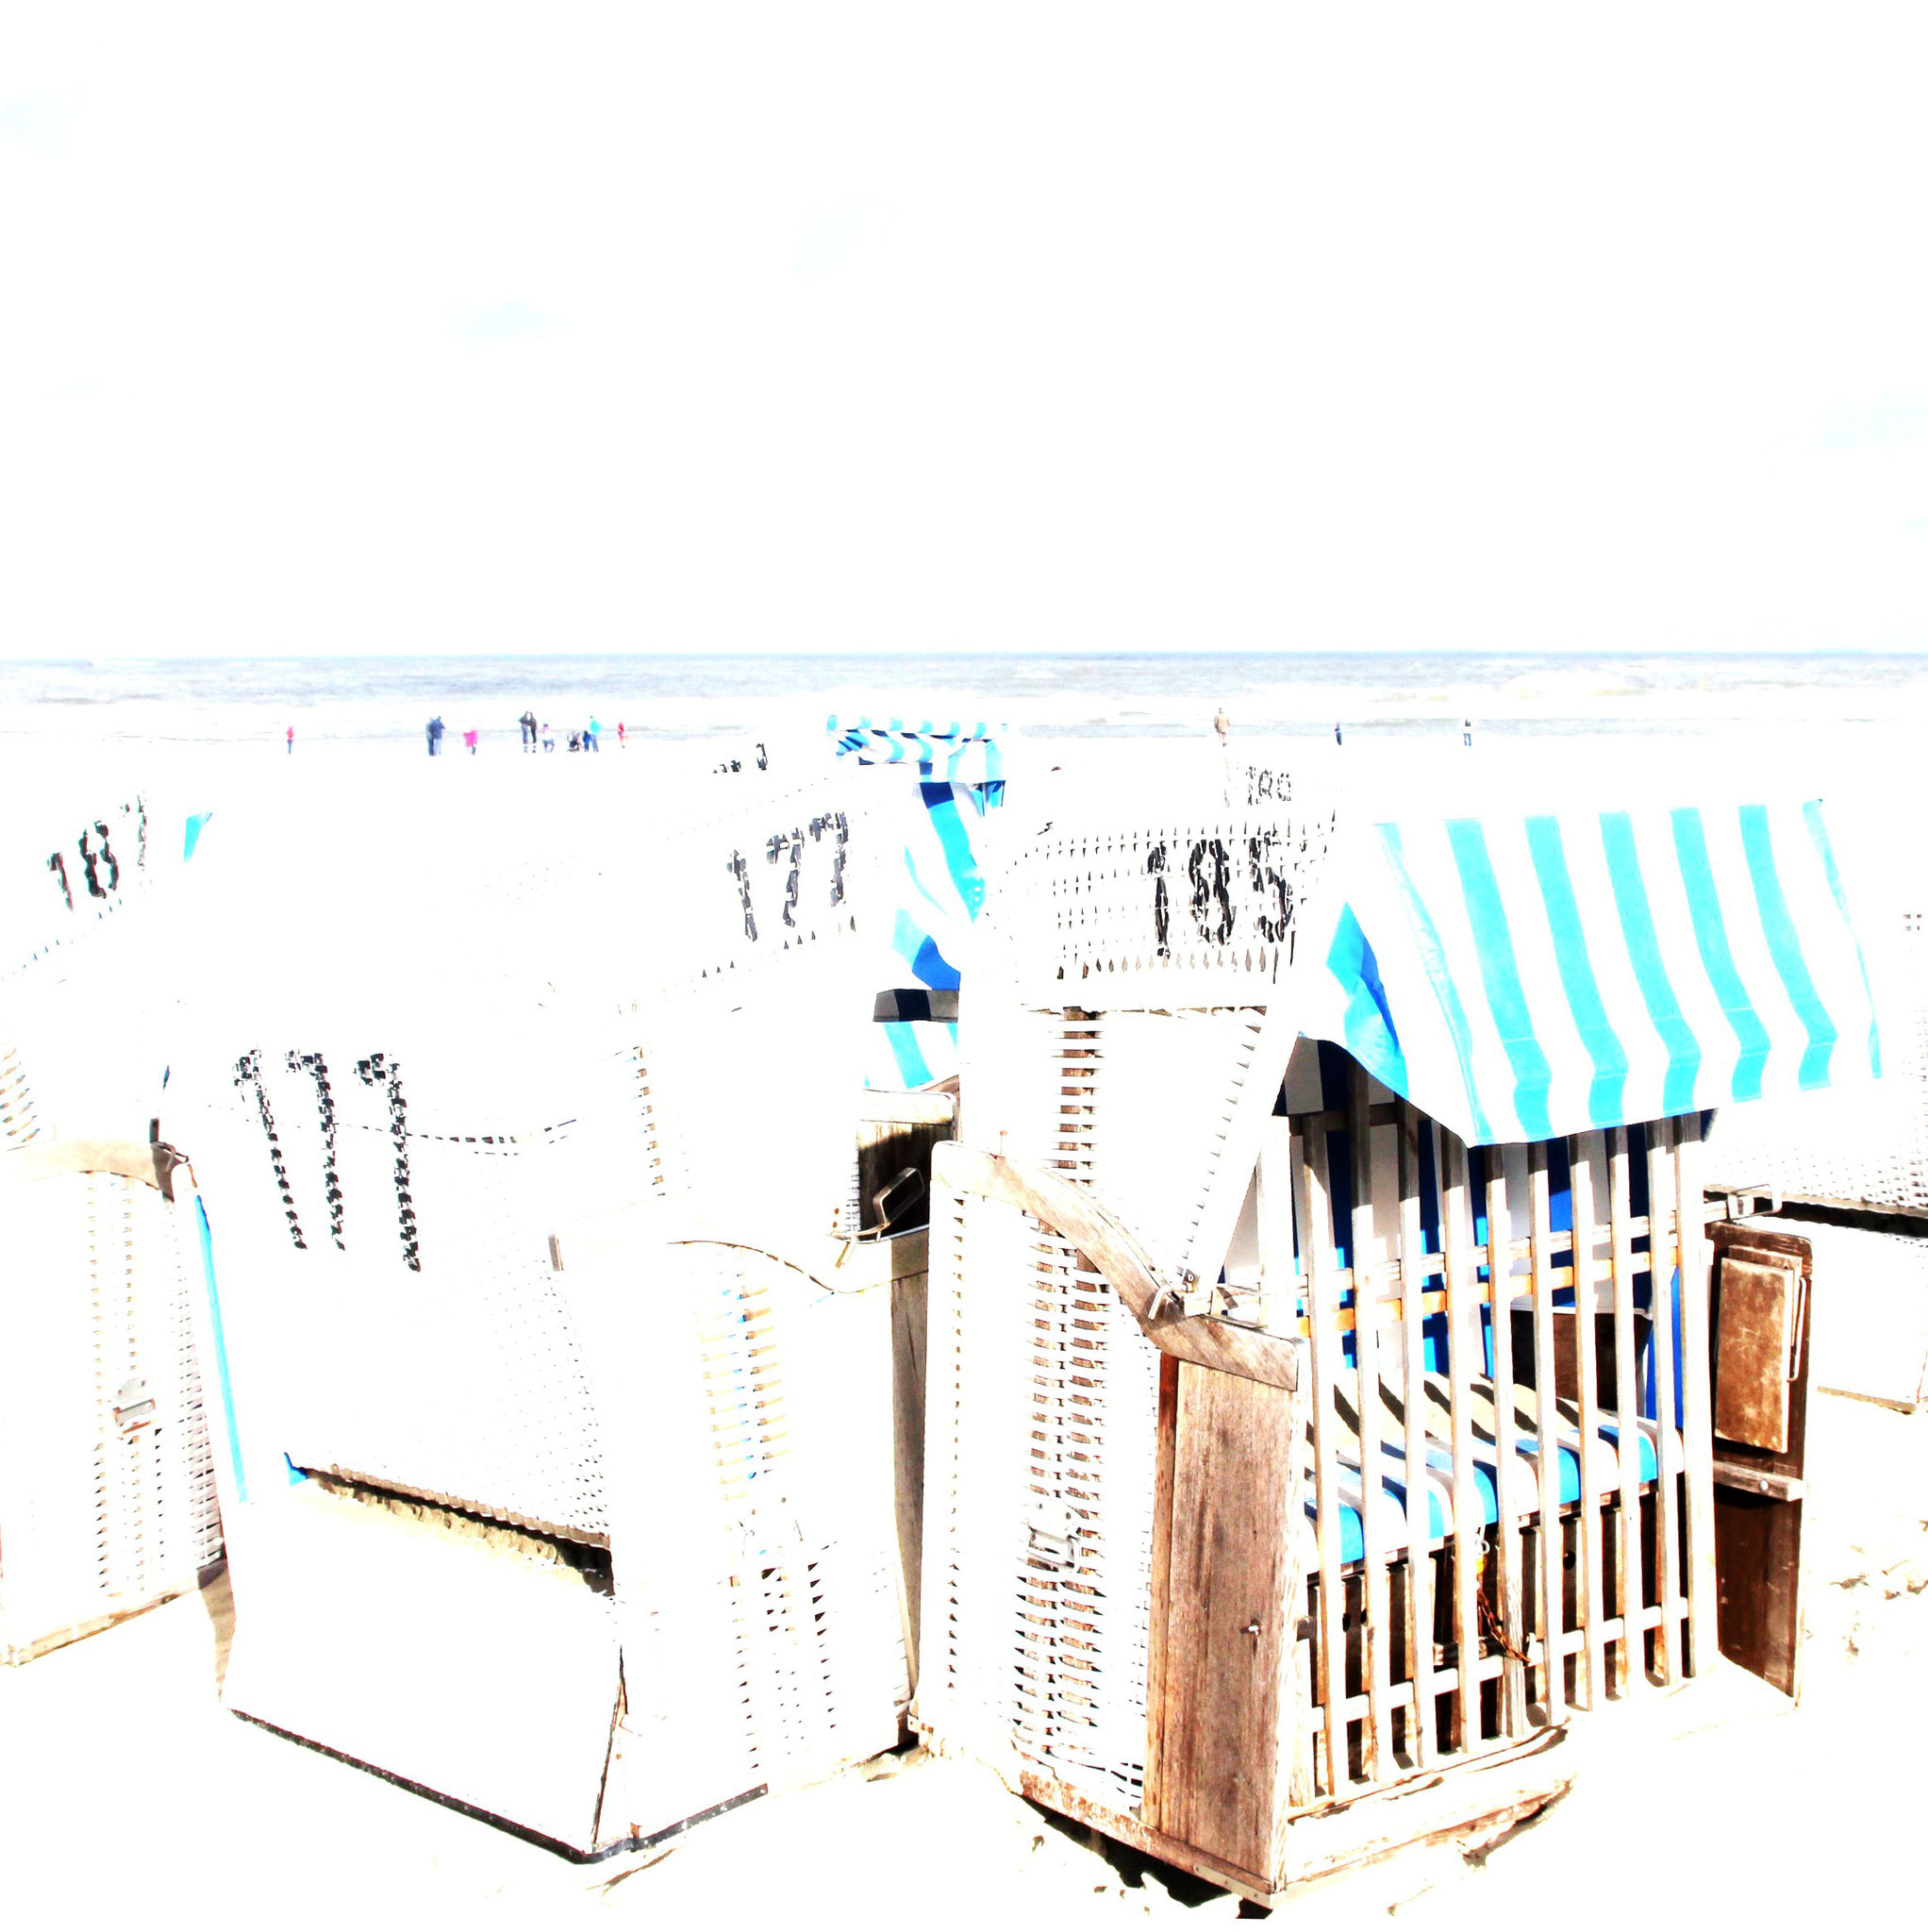 177[185] Nordsee